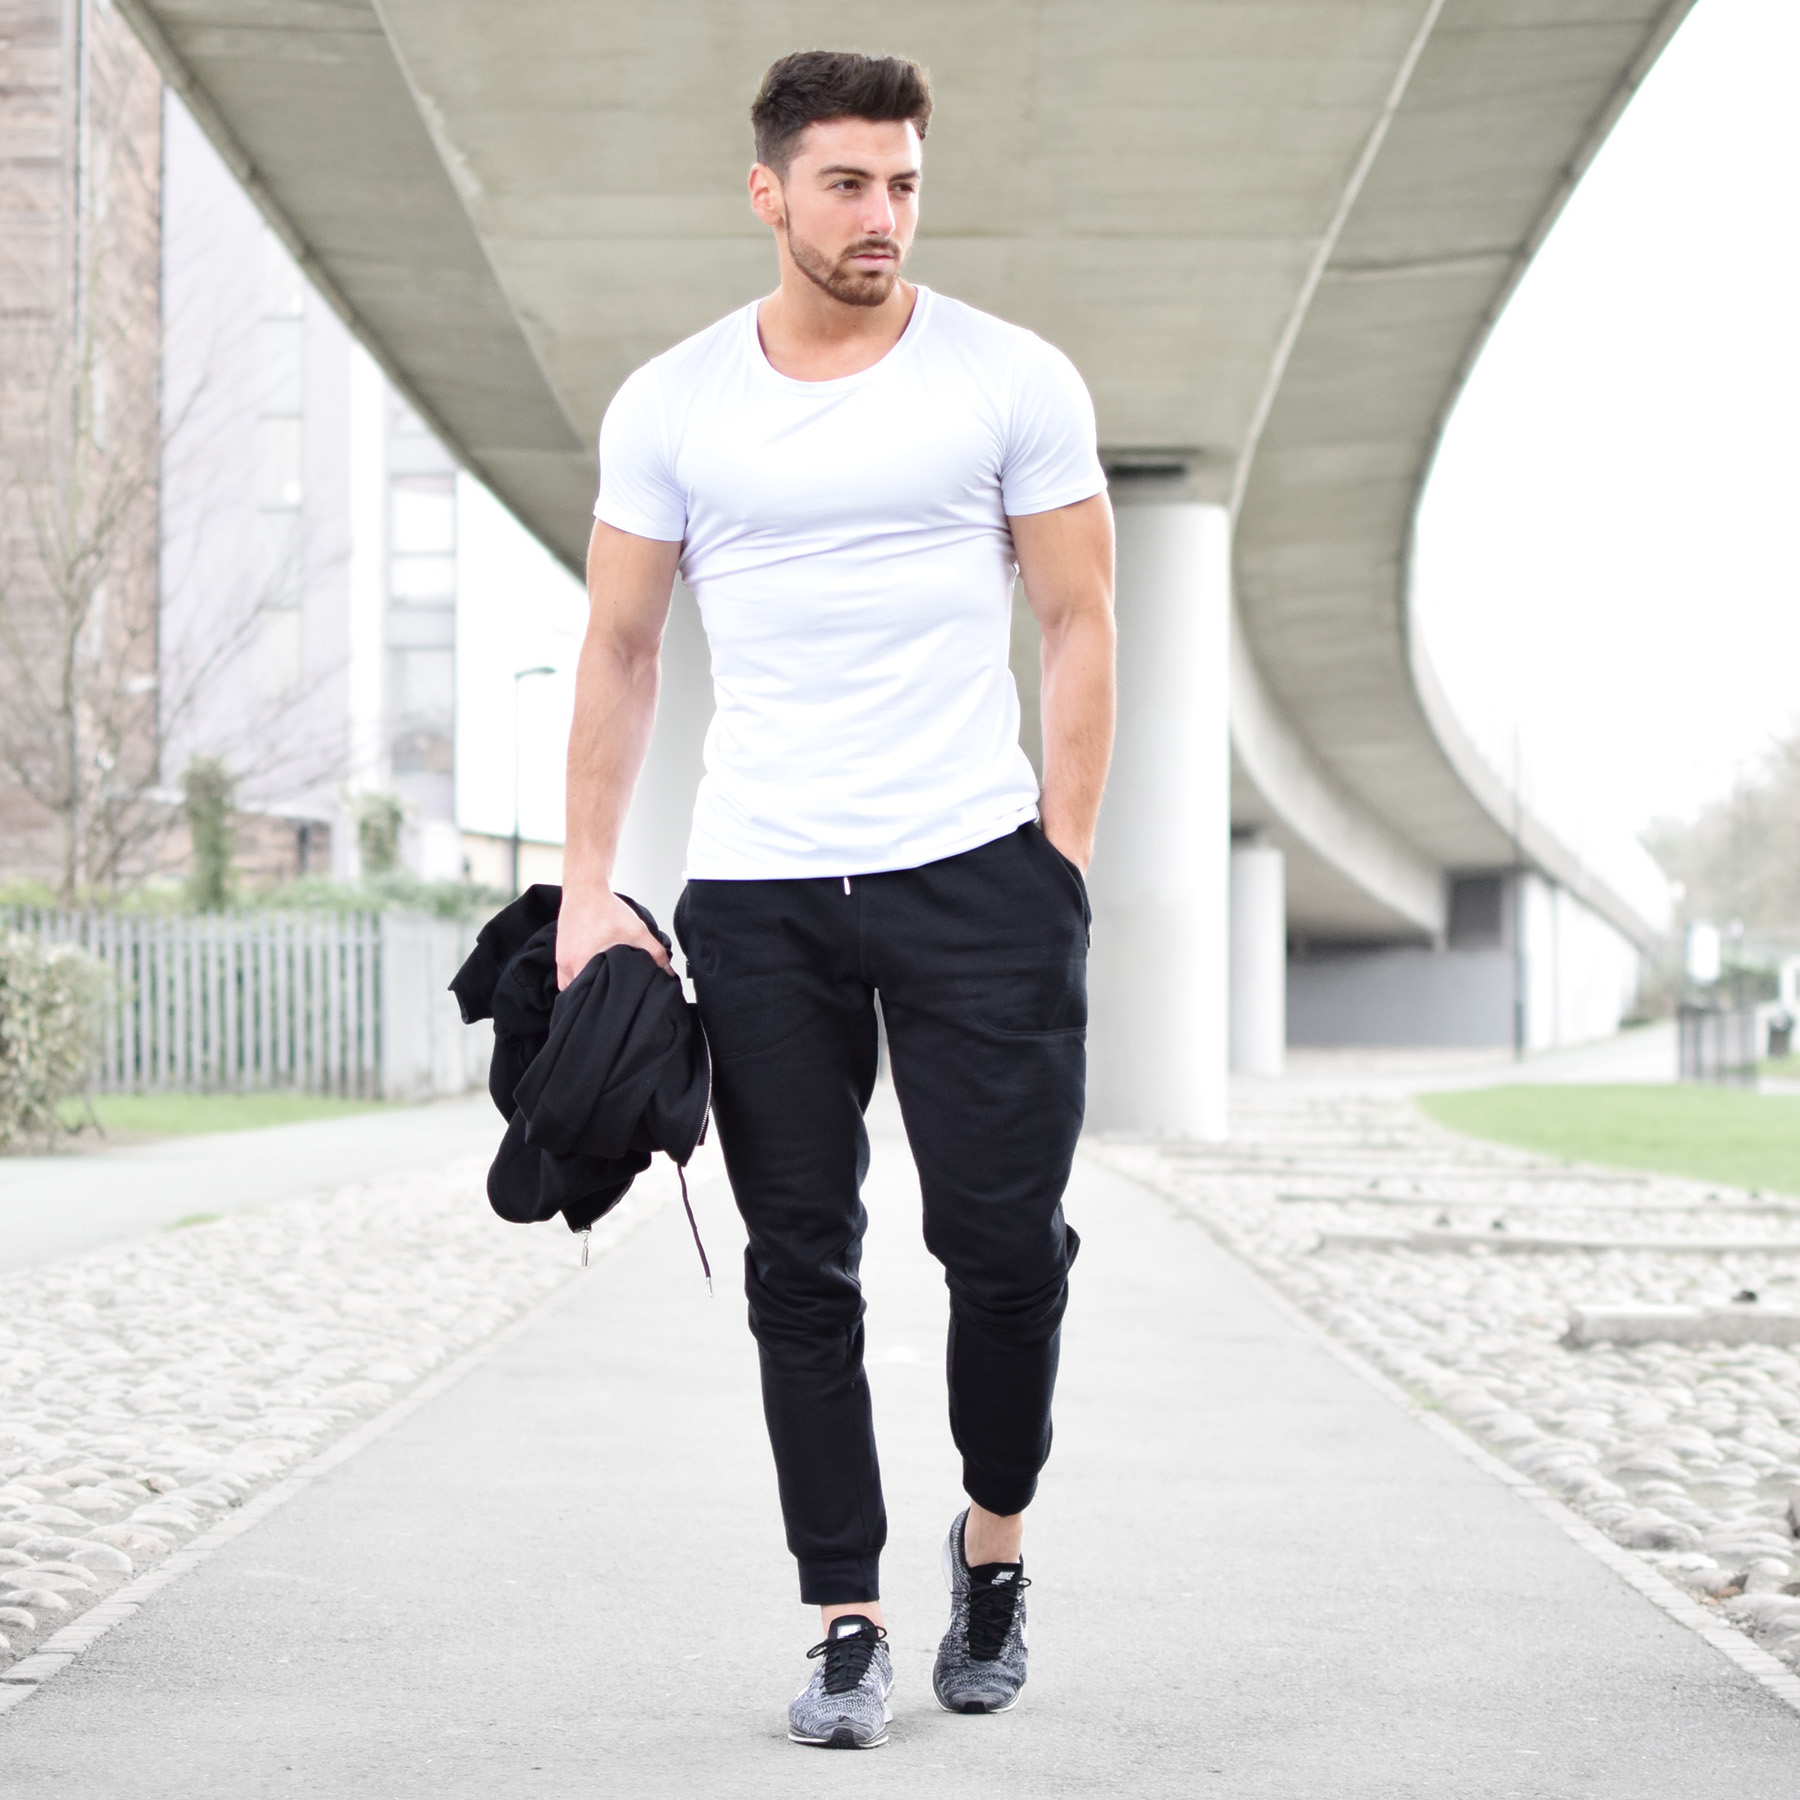 Elegant T-Shirts- Every Man Should Keep In His Wardrobe